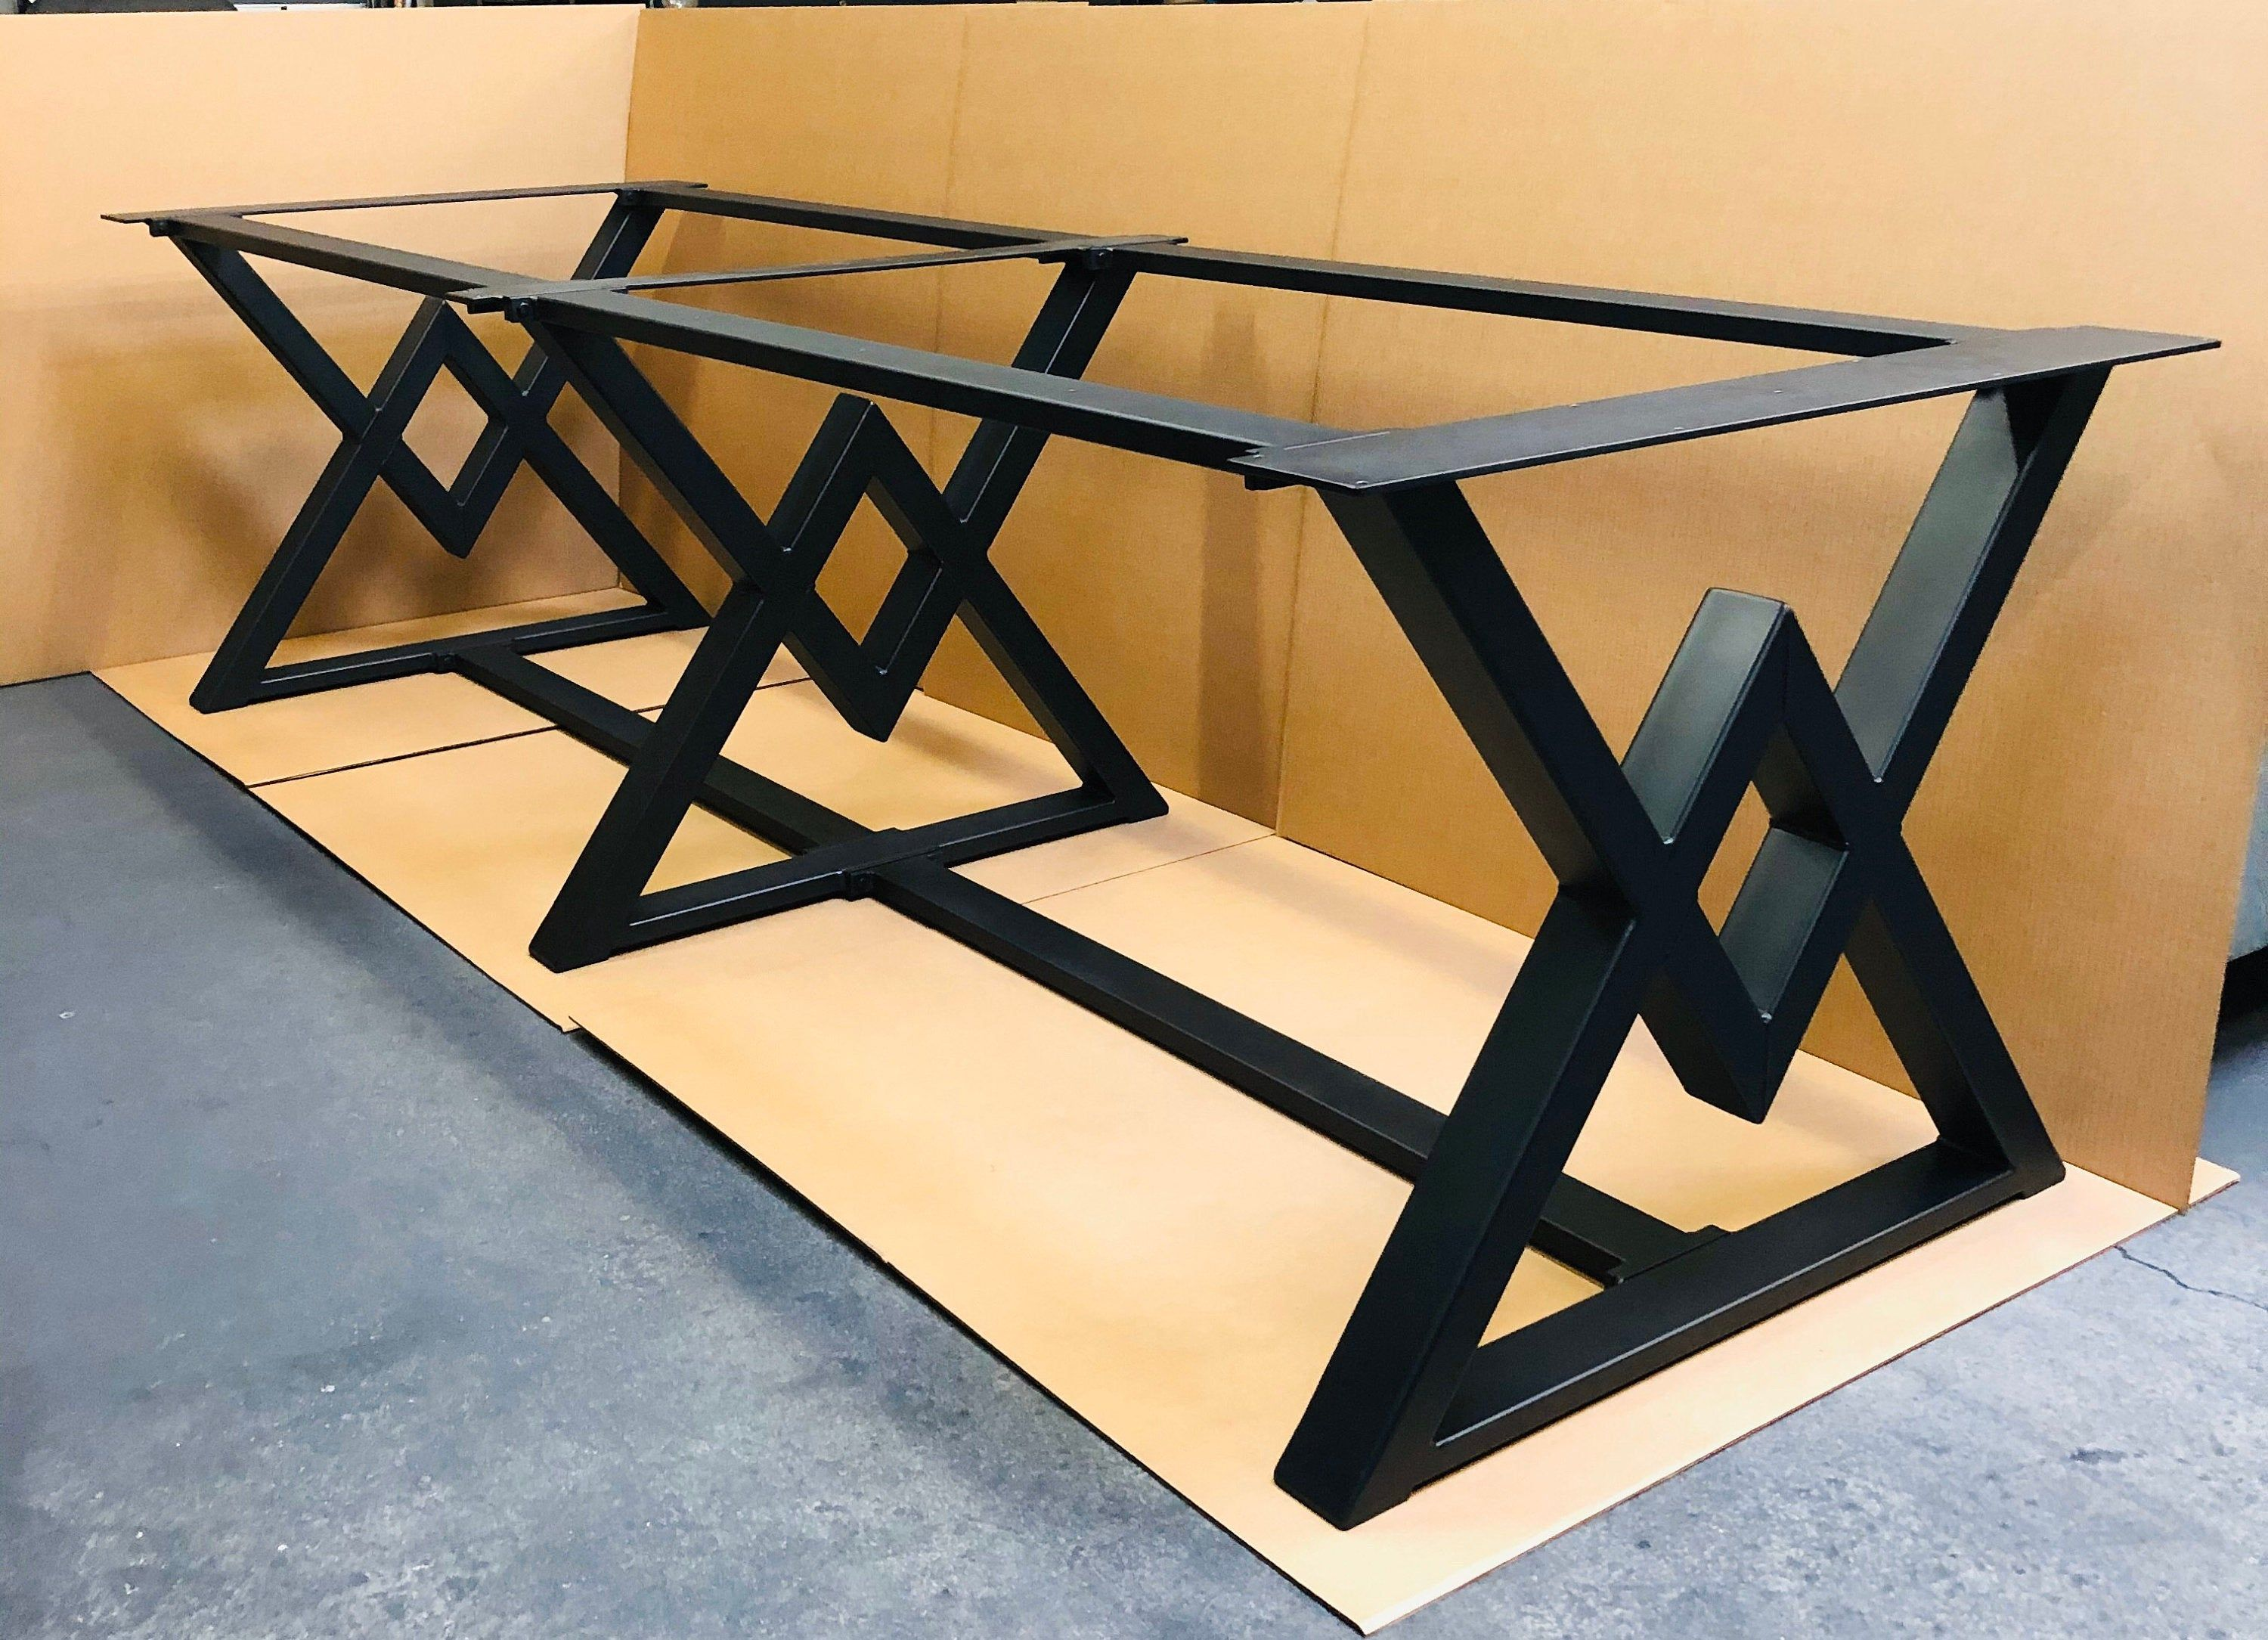 The Diamond Conference Table Base 3 Legs With 6 Braces Etsy In 2020 Conference Table Dining Table Bases Metal Table Base